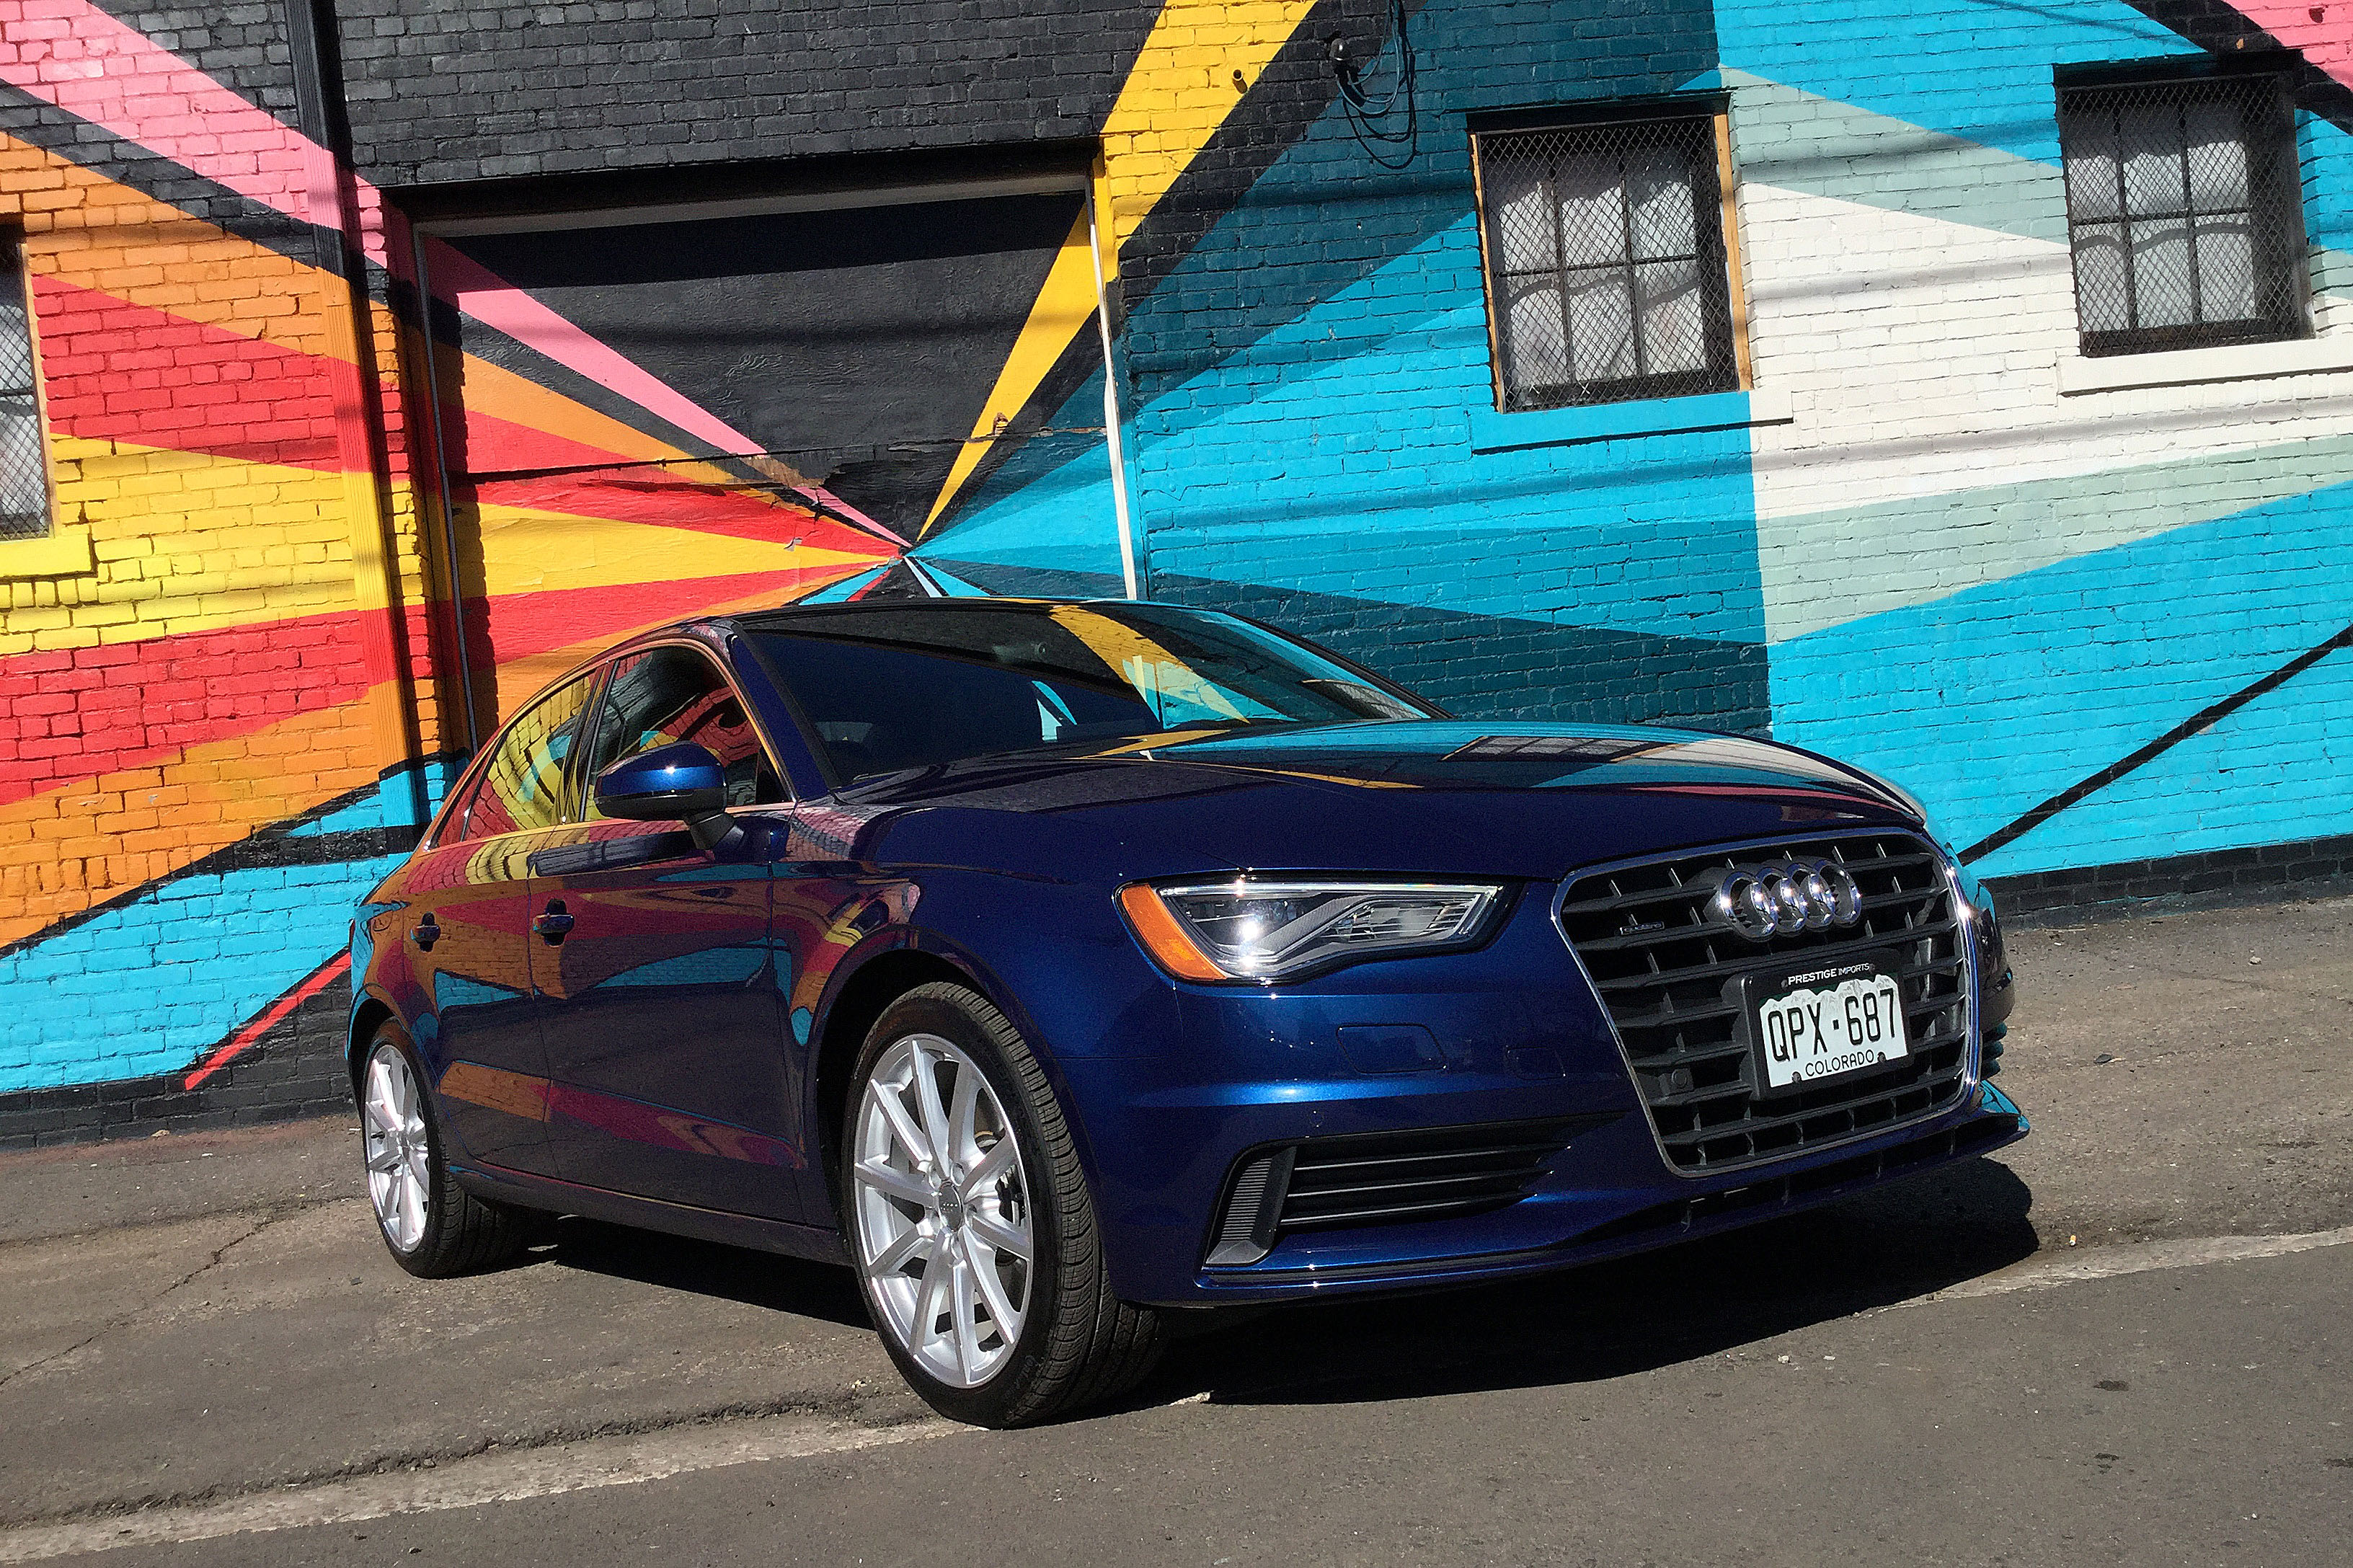 The Audi A3 in front of a colorful mural in Denver's RiNo Art District.